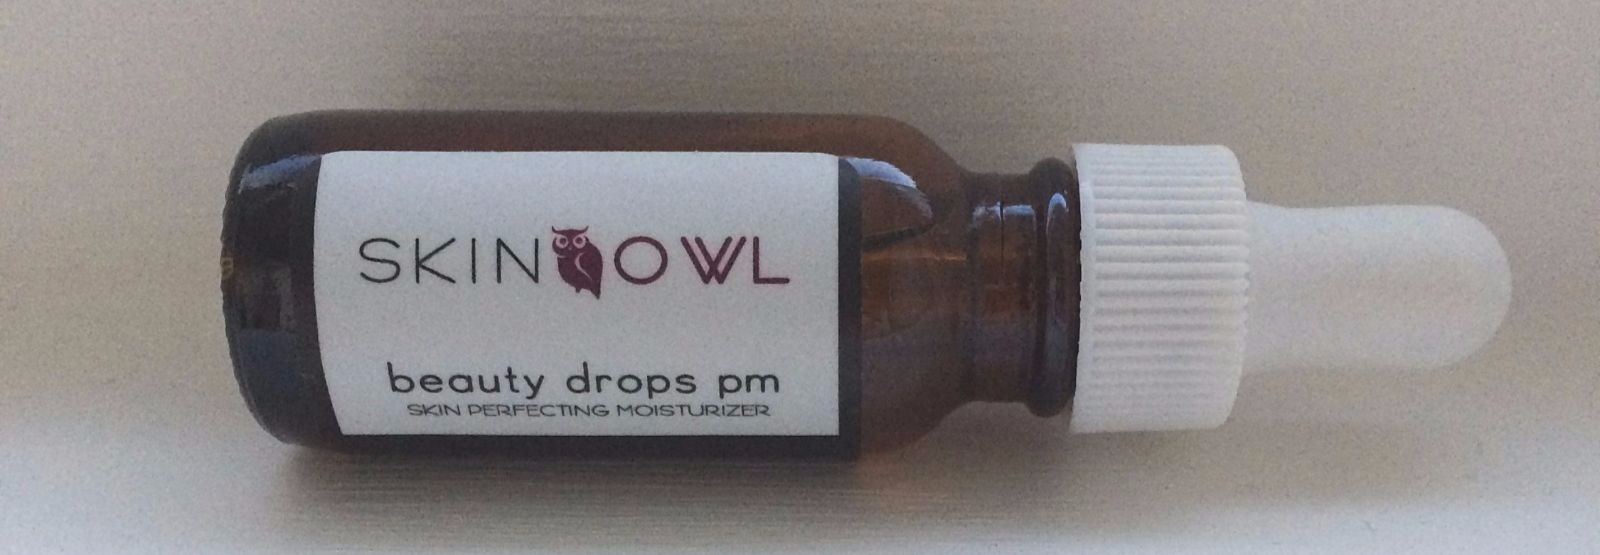 Skin owl beauty drops